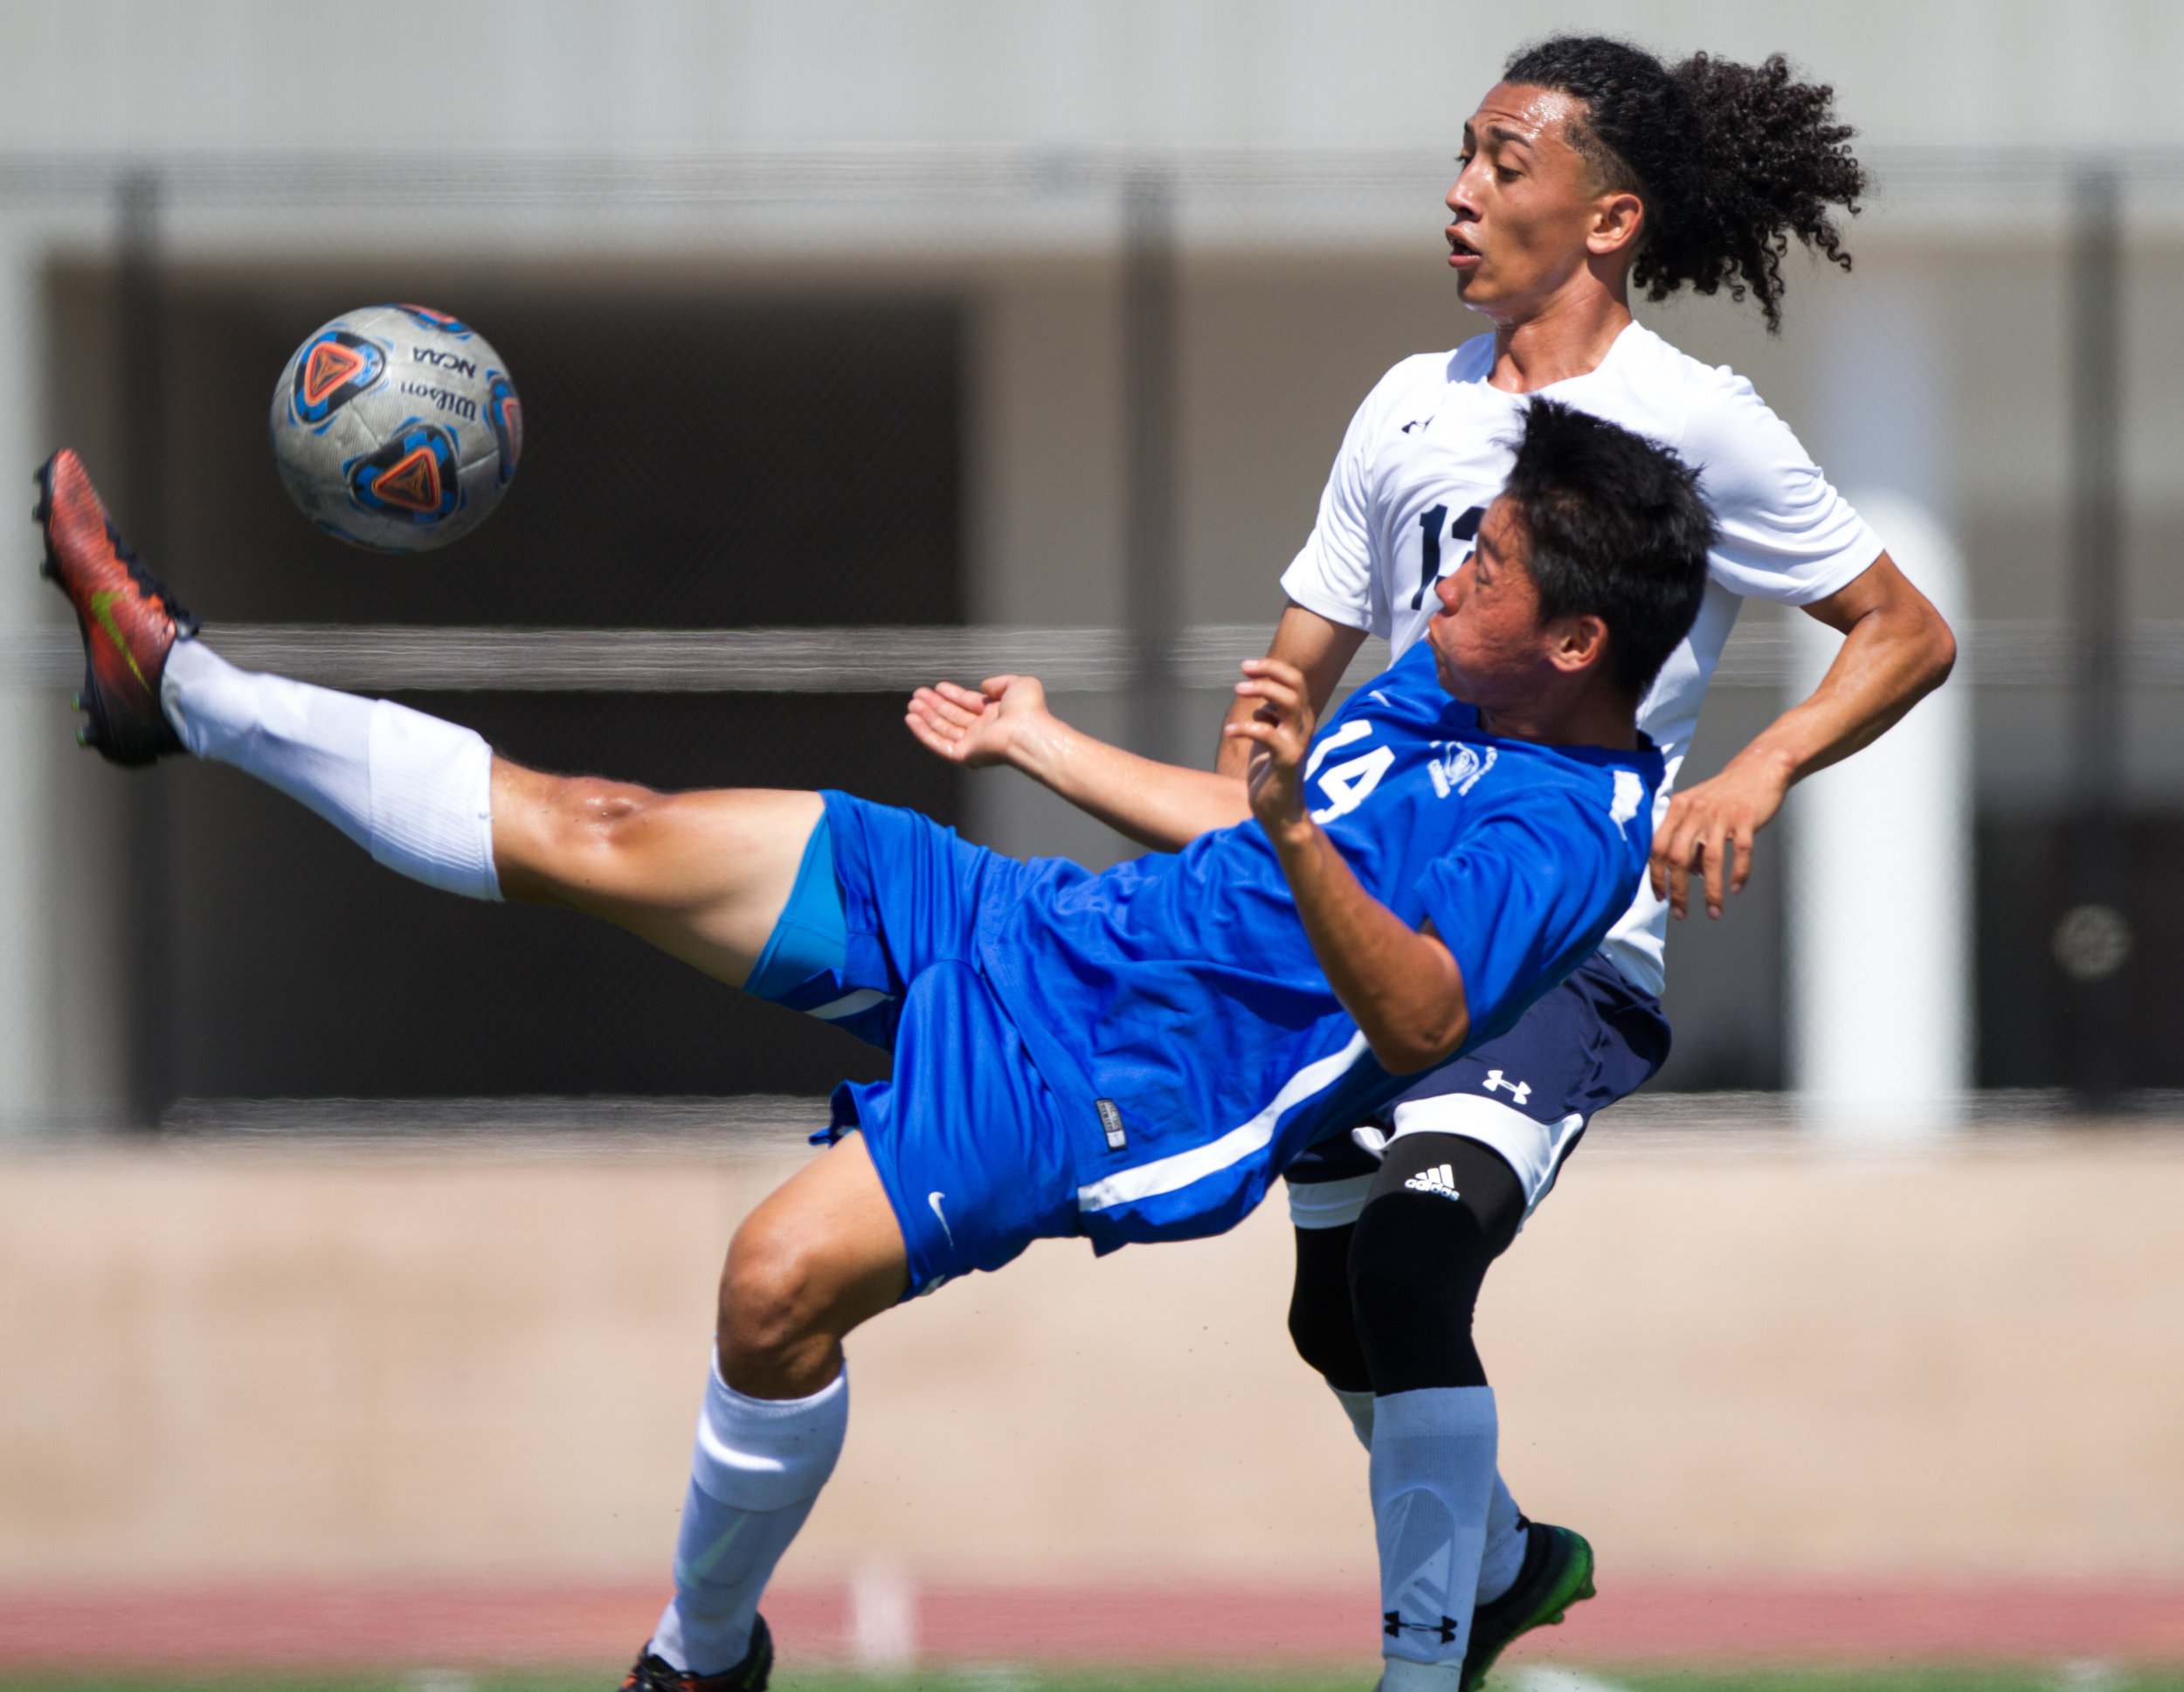 Santa Monica Corsair Narciso Cervantes (14) kicks the ball as he competes for possession against El Camino Warrior John Cerda (13) on September 1, 2017 on the Corsair Field at Santa Monica College in Santa Monica, California. The Corsairs take home a win against the Warriors 5-1. (Jose Lopez)